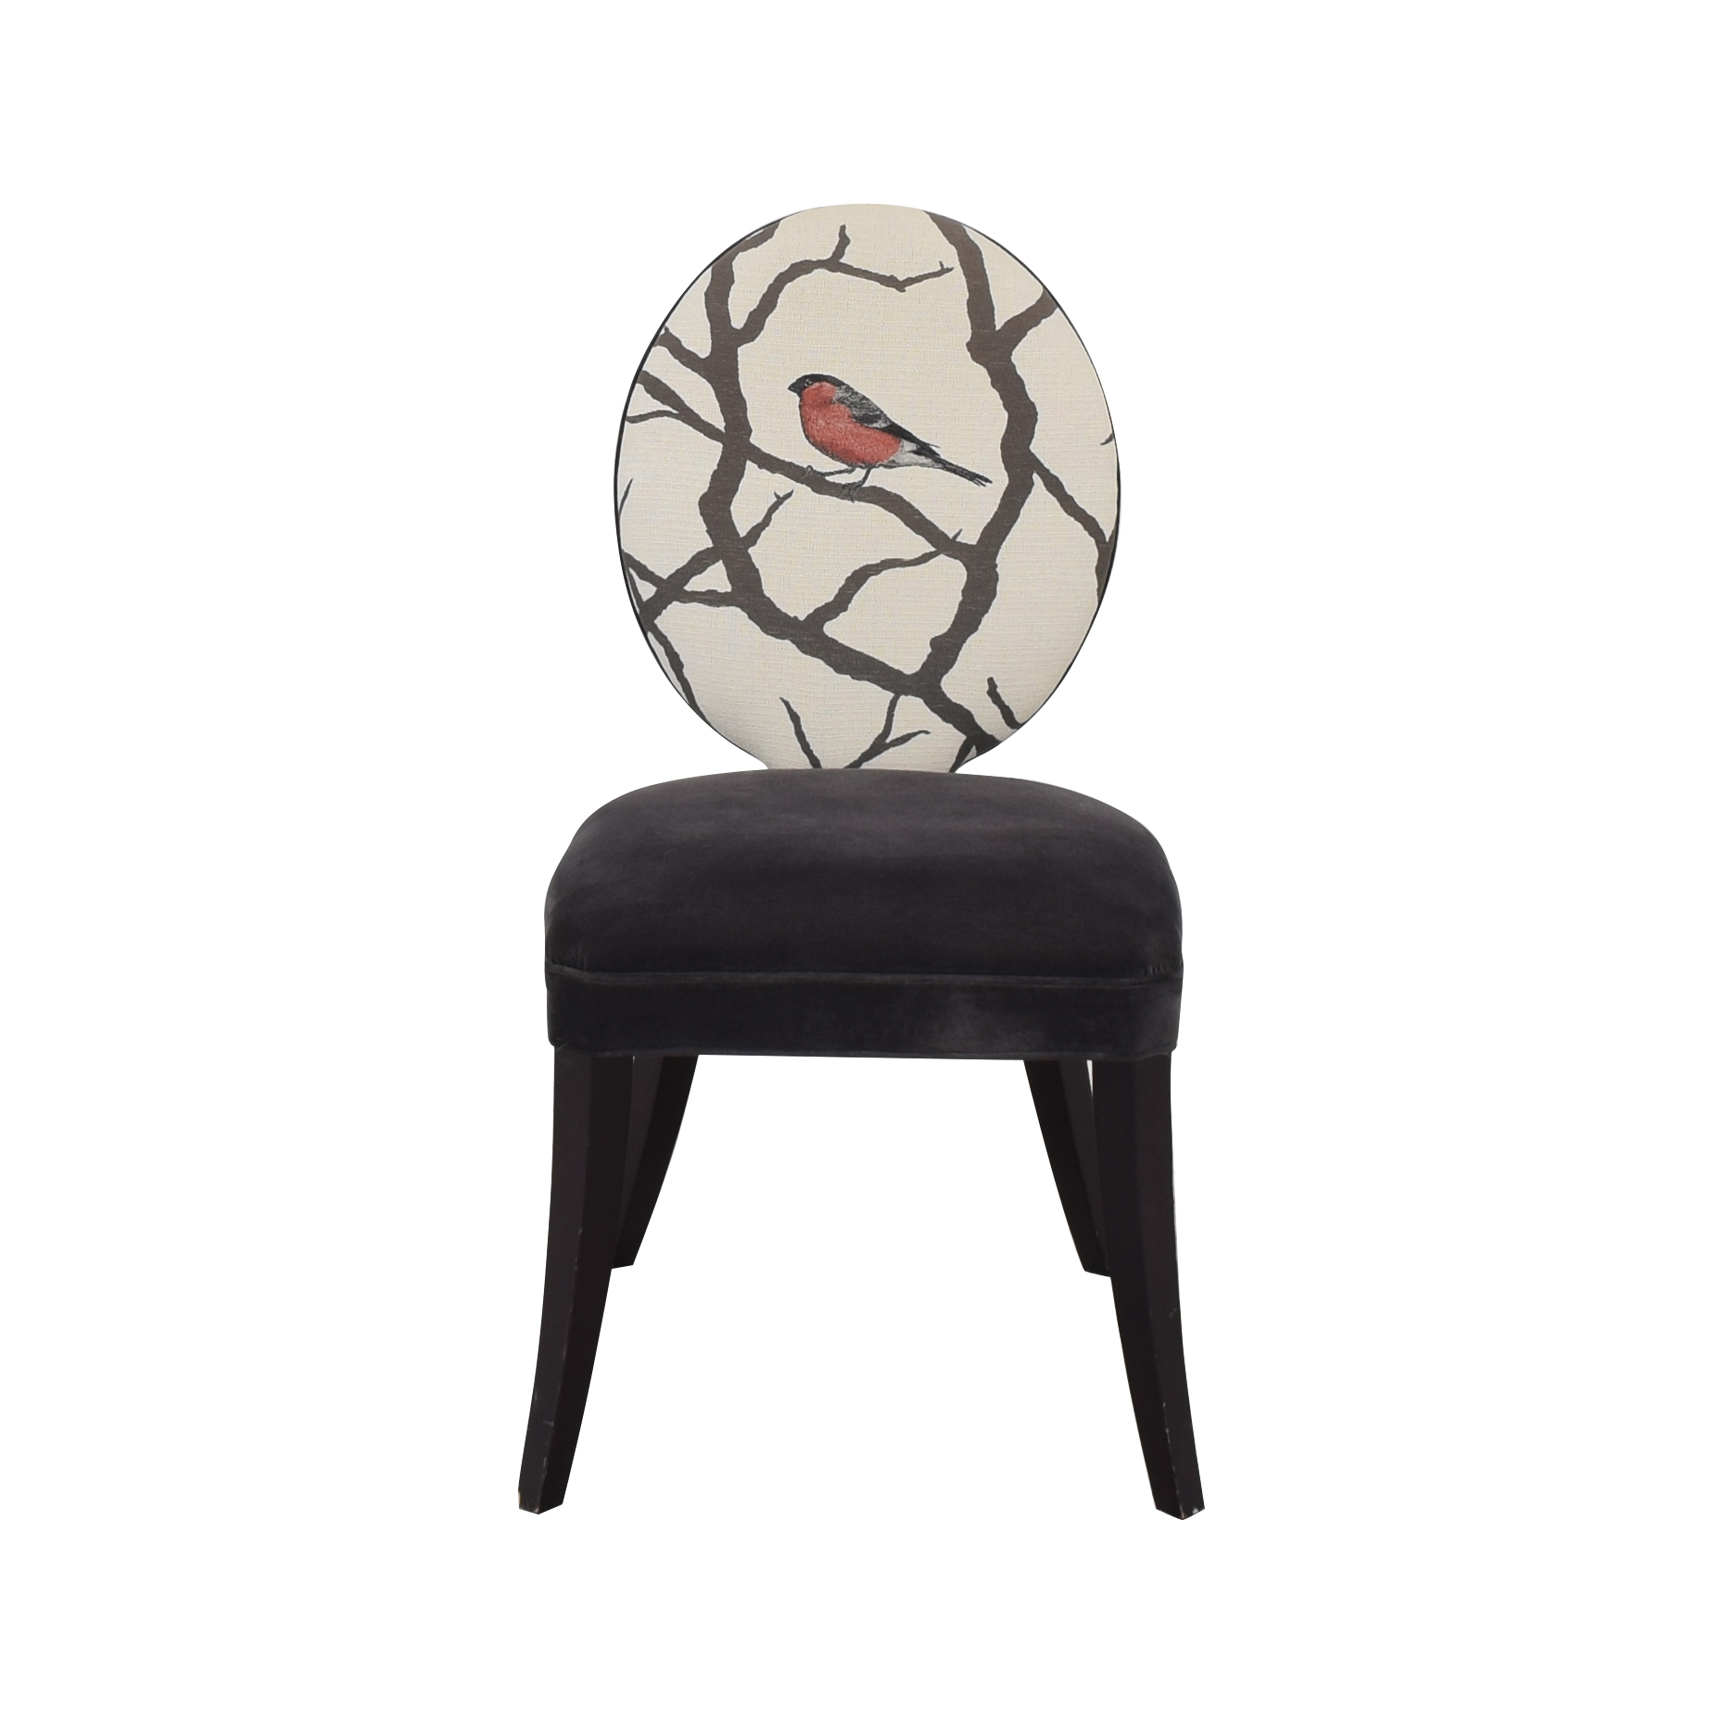 buy Mitchell Gold + Bob Williams Mitchell Gold + Bob Williams Oval Back Side Chair with Bird Print online